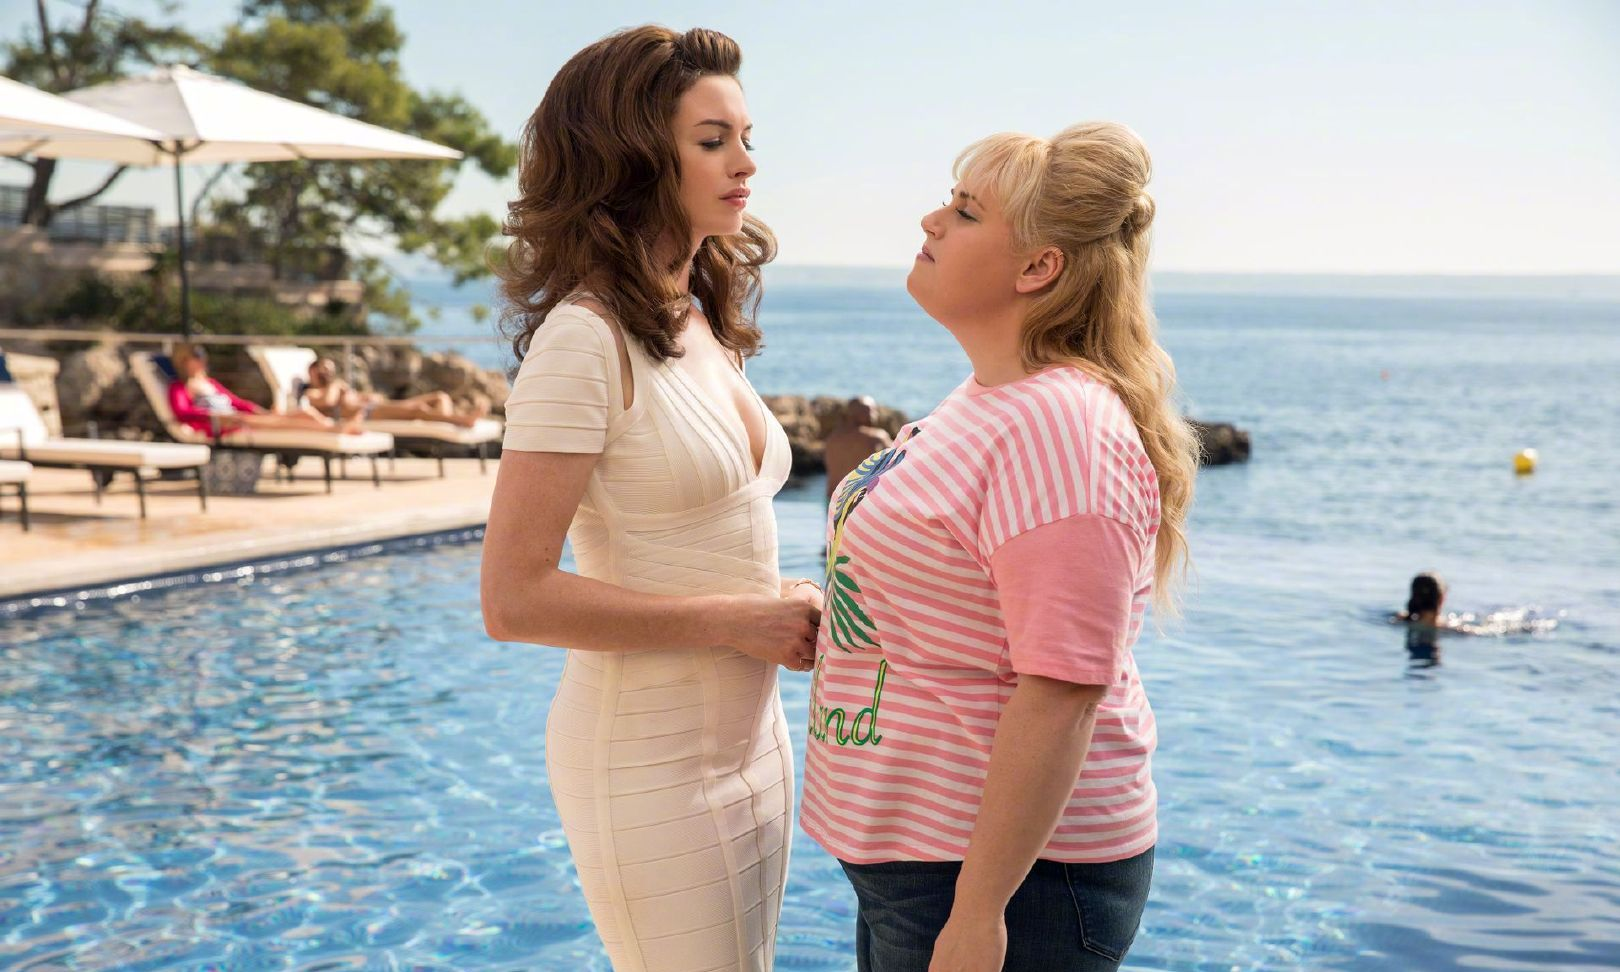 The Hustle Anne Hathaway and Rebel Wilson